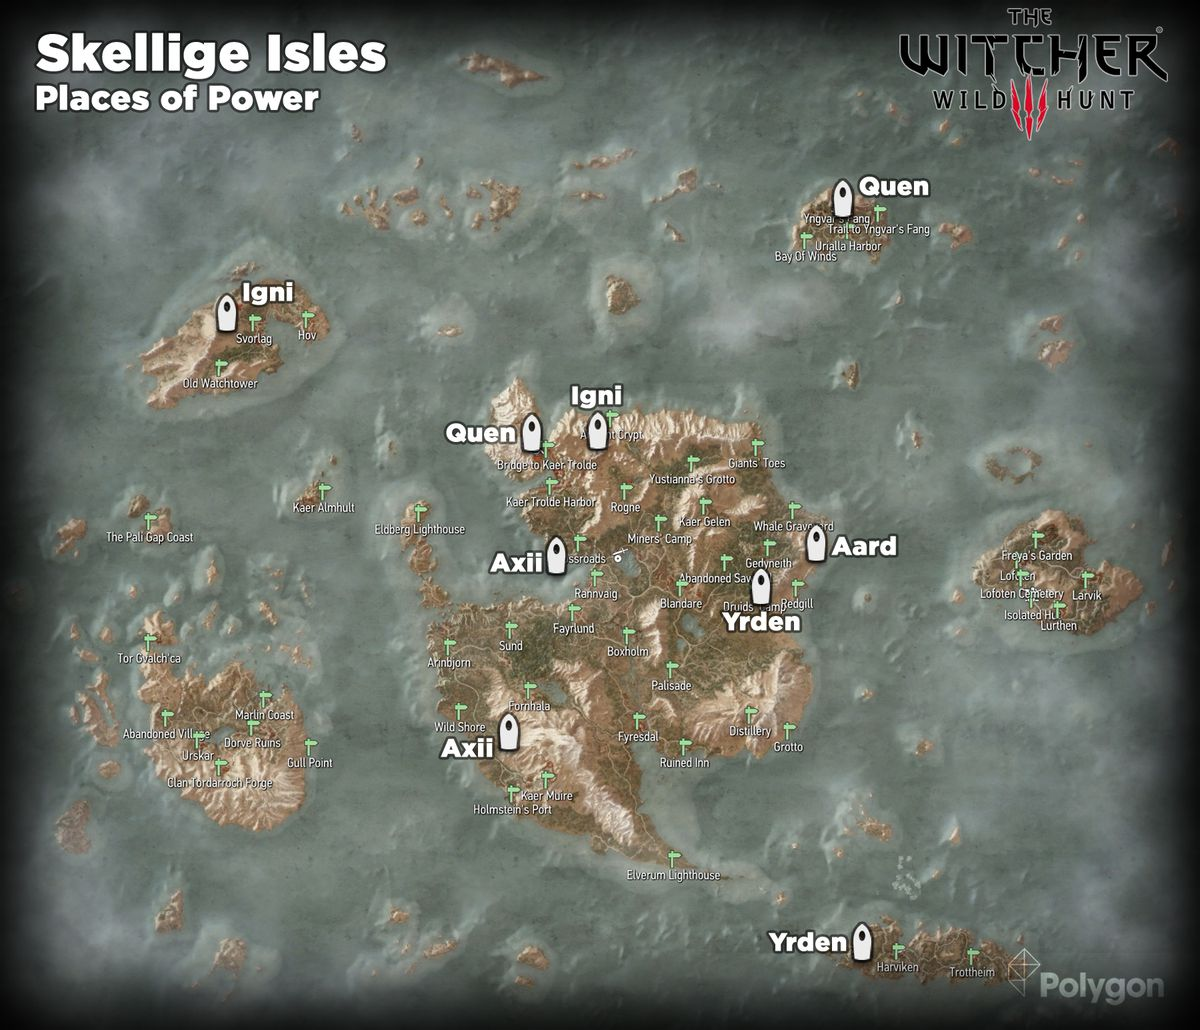 Witcher 3 Skellige Isles Places of Power locations map